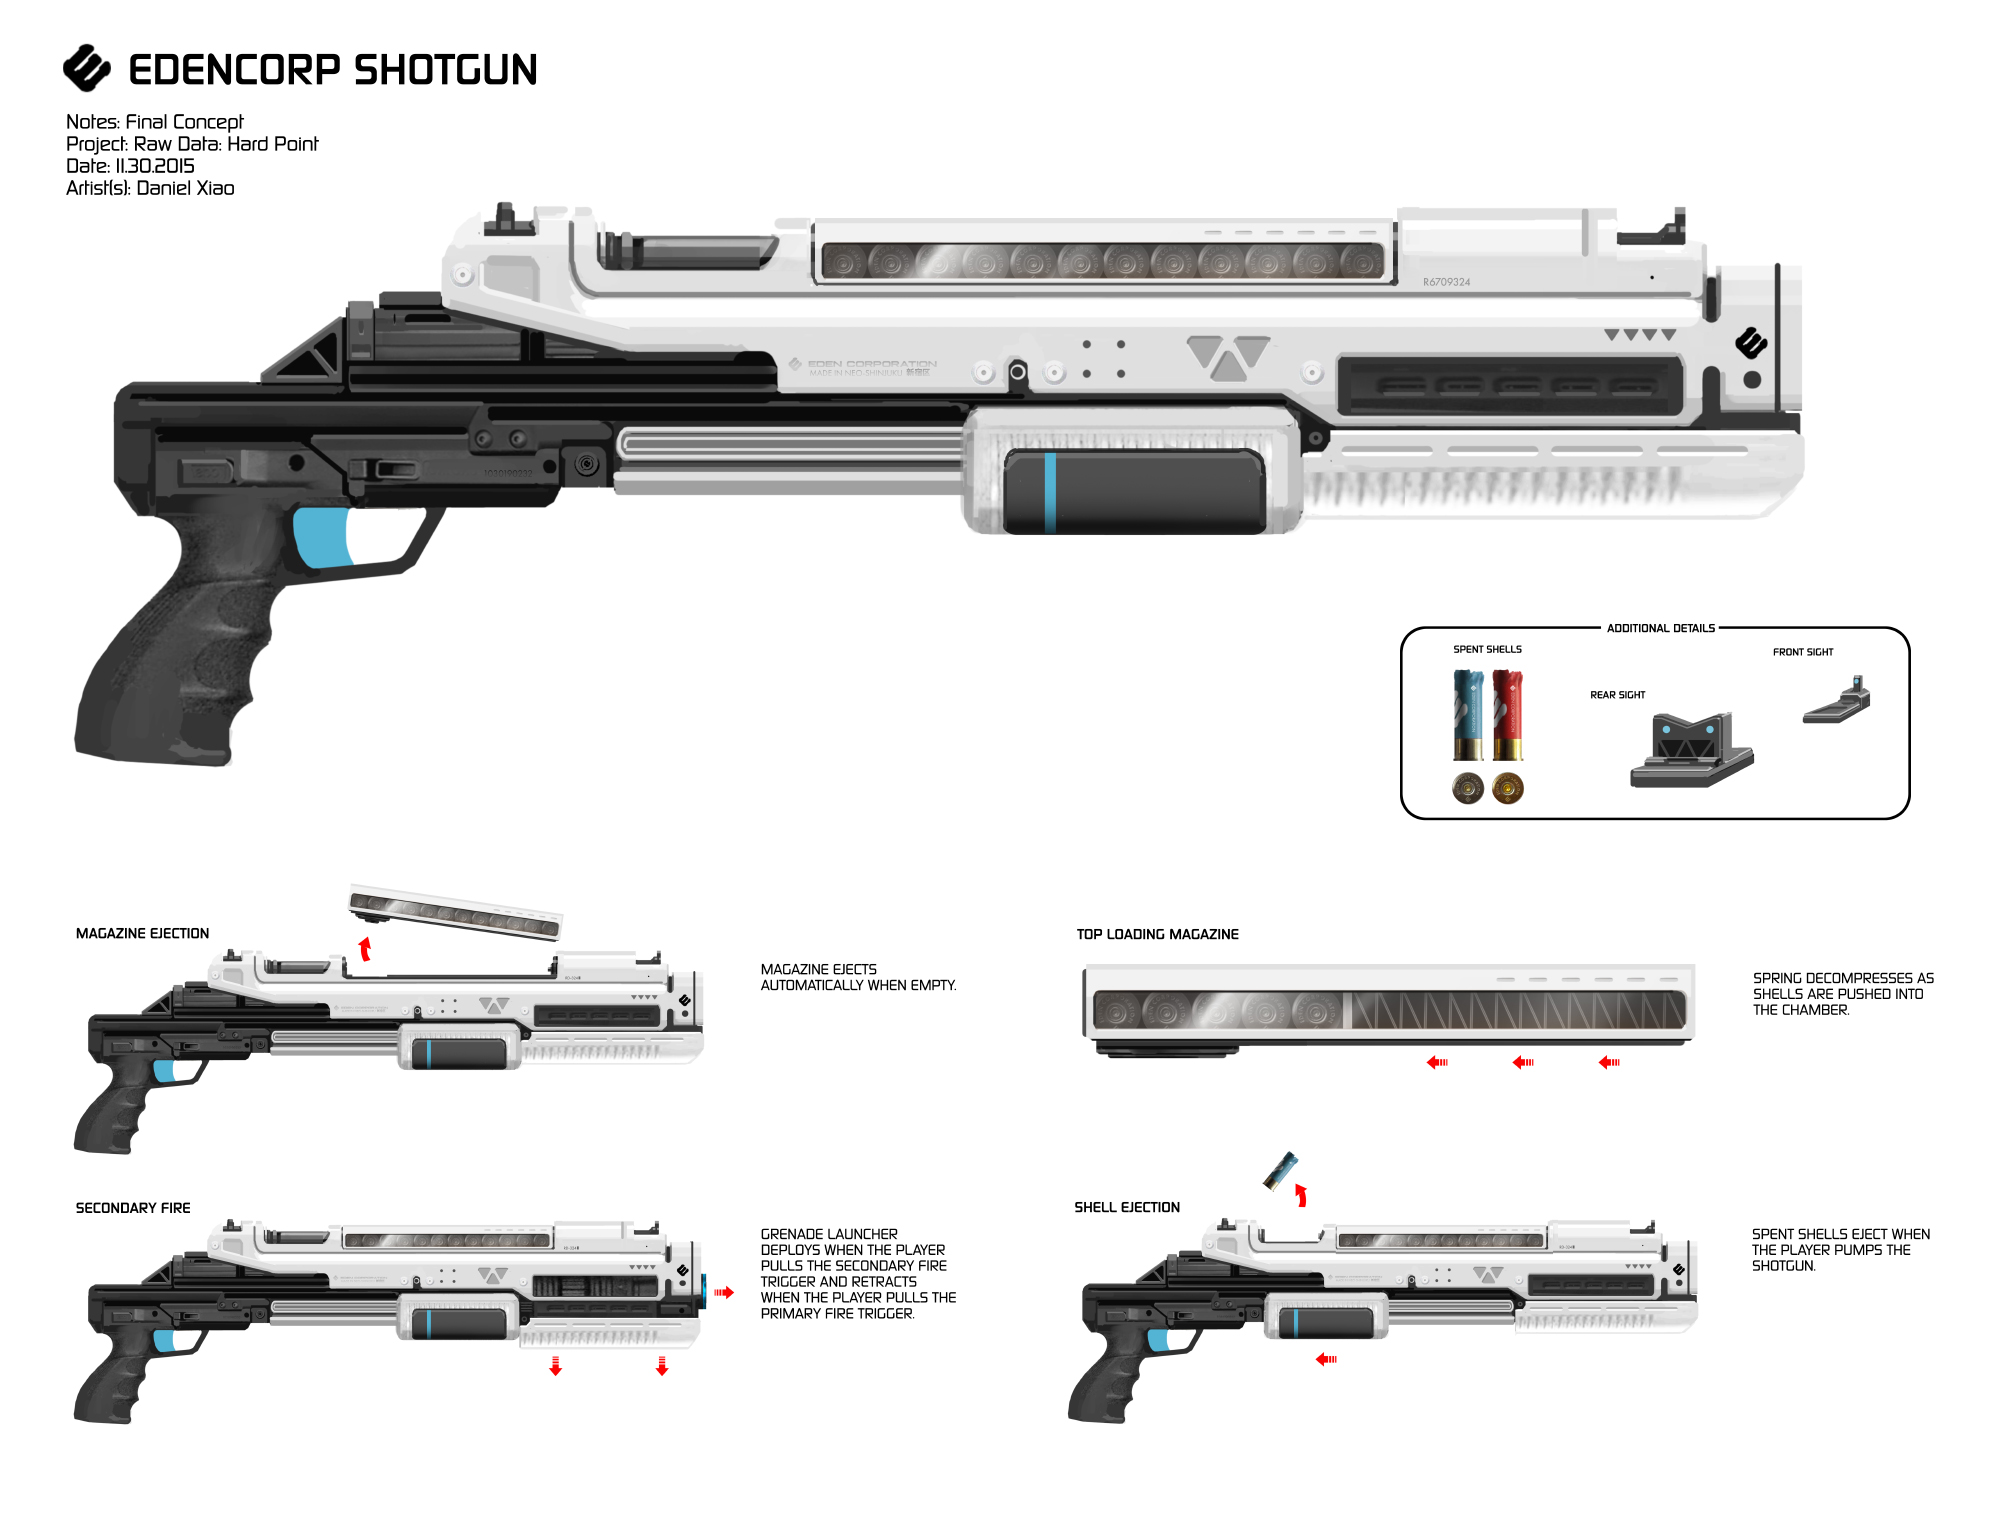 Concept art for the Eden Corp shotgun with a magazine design inspired by a classic real-world gun, the FN P90.